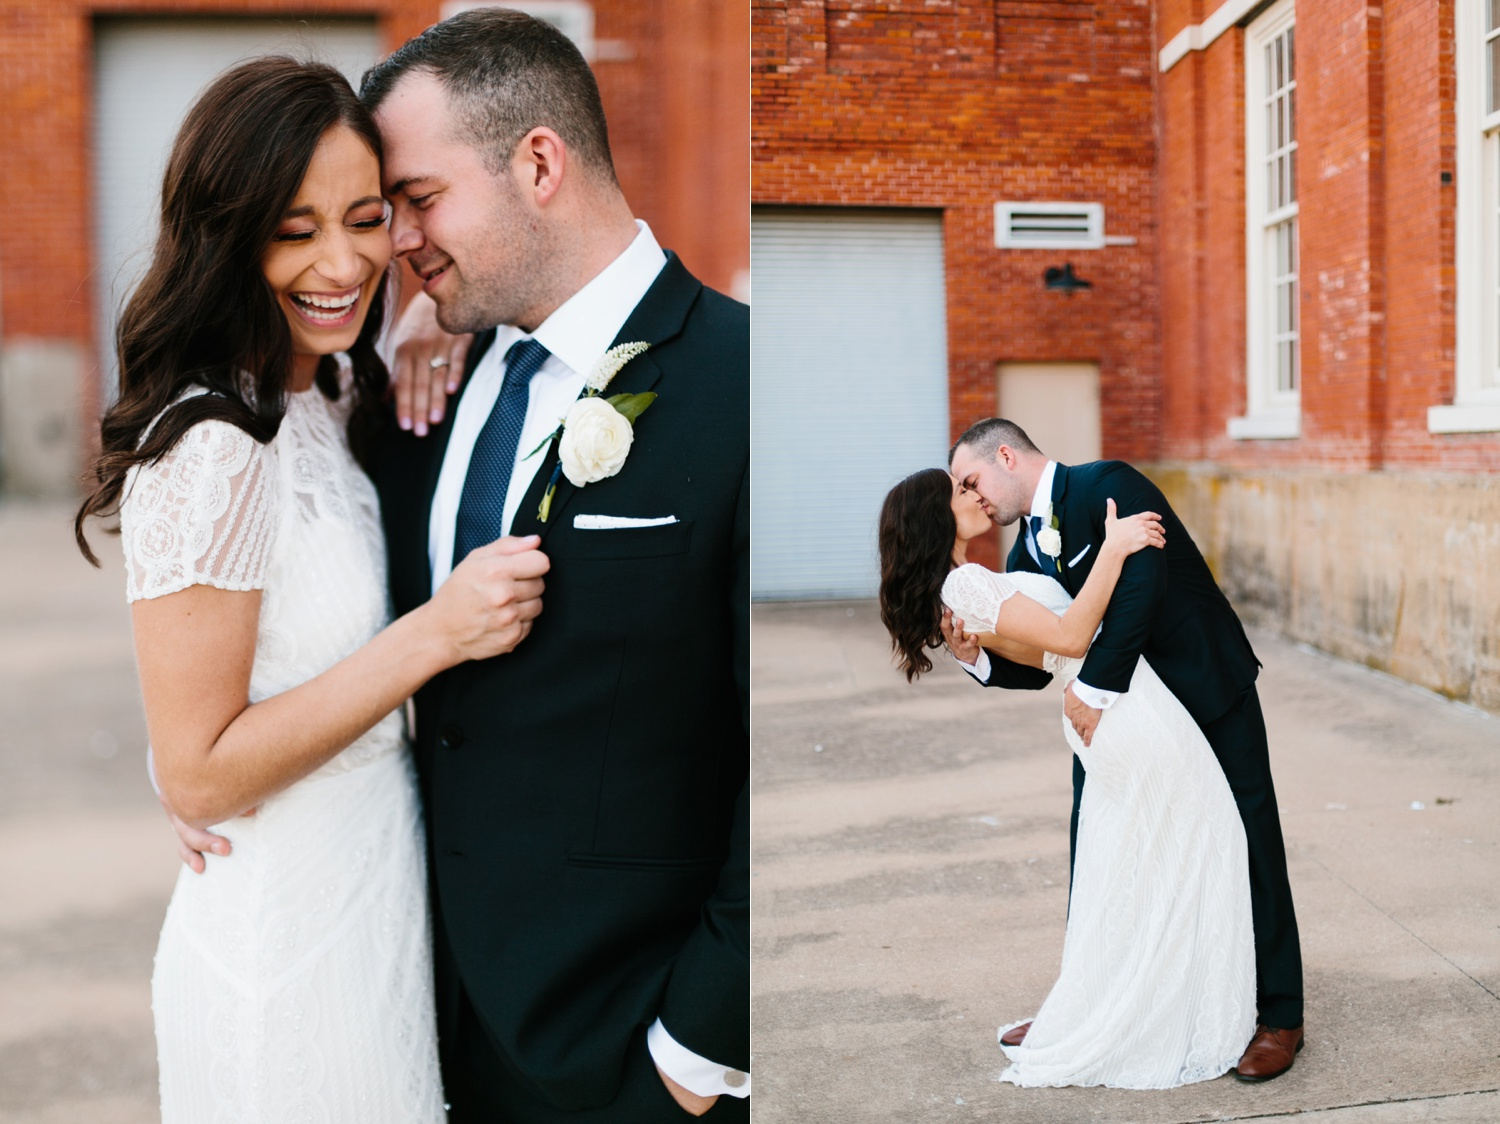 Kadee + Tyler | a raw, emotional wedding at the Filter Building on White Rock Lake in Dallas, TX by North Texas Wedding Photographer, Rachel Meagan Photography 084